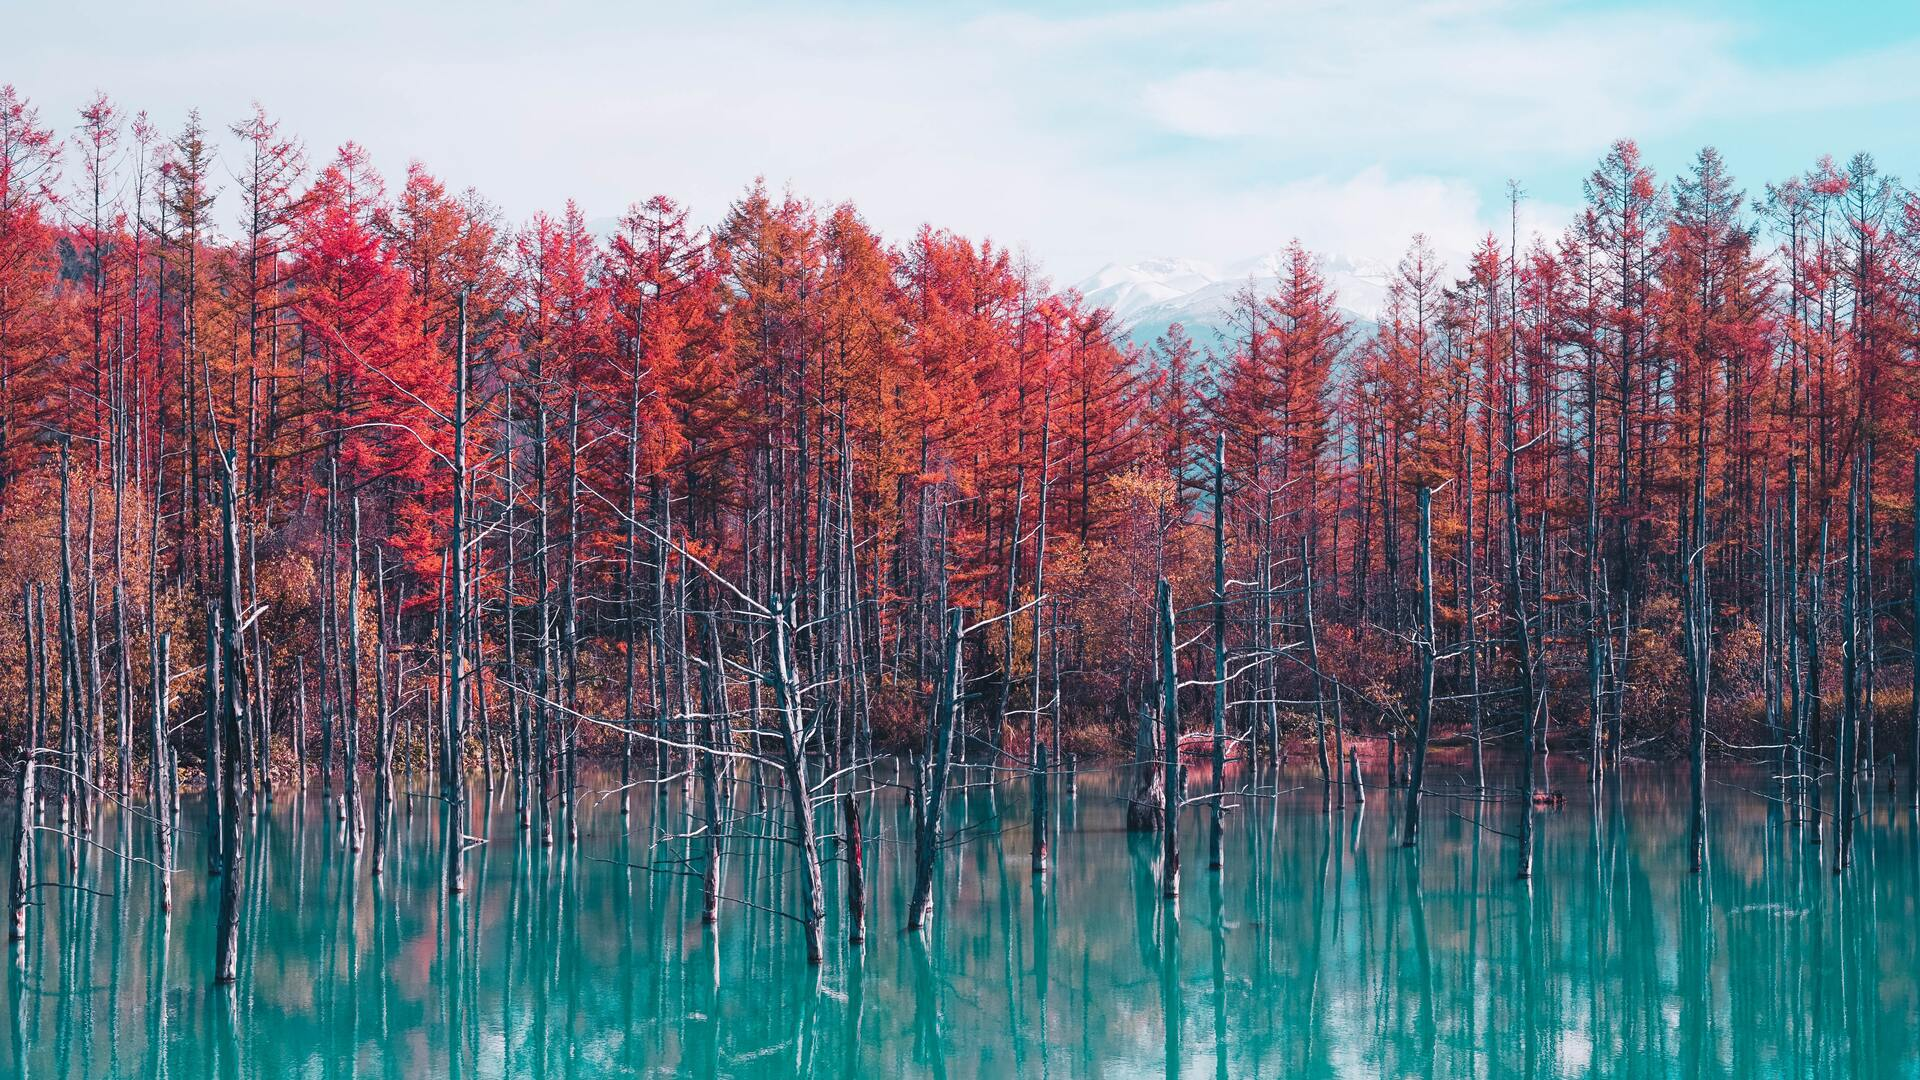 nature-landscape-trees-forest-fall-water-pond-sky-clouds-4k-bx.jpg